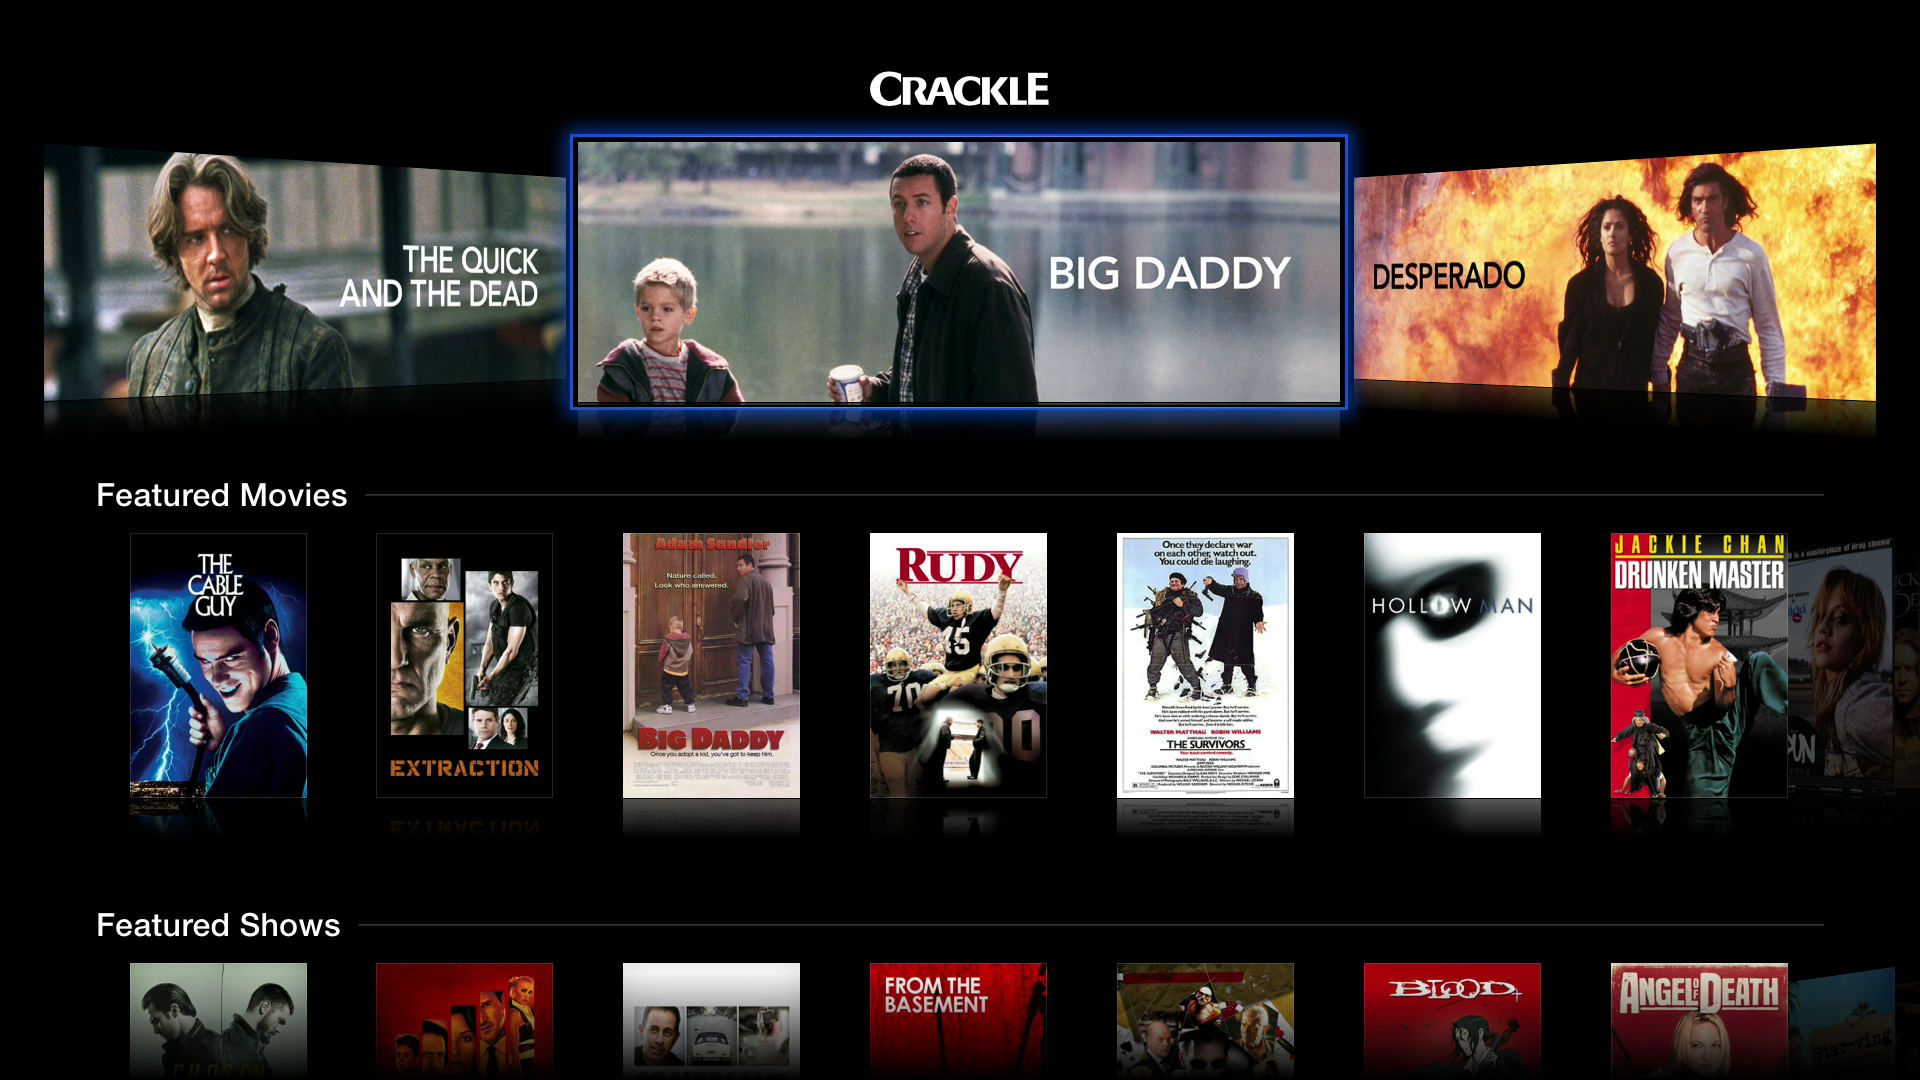 Legal websites with free movies - Public Domain Flicks